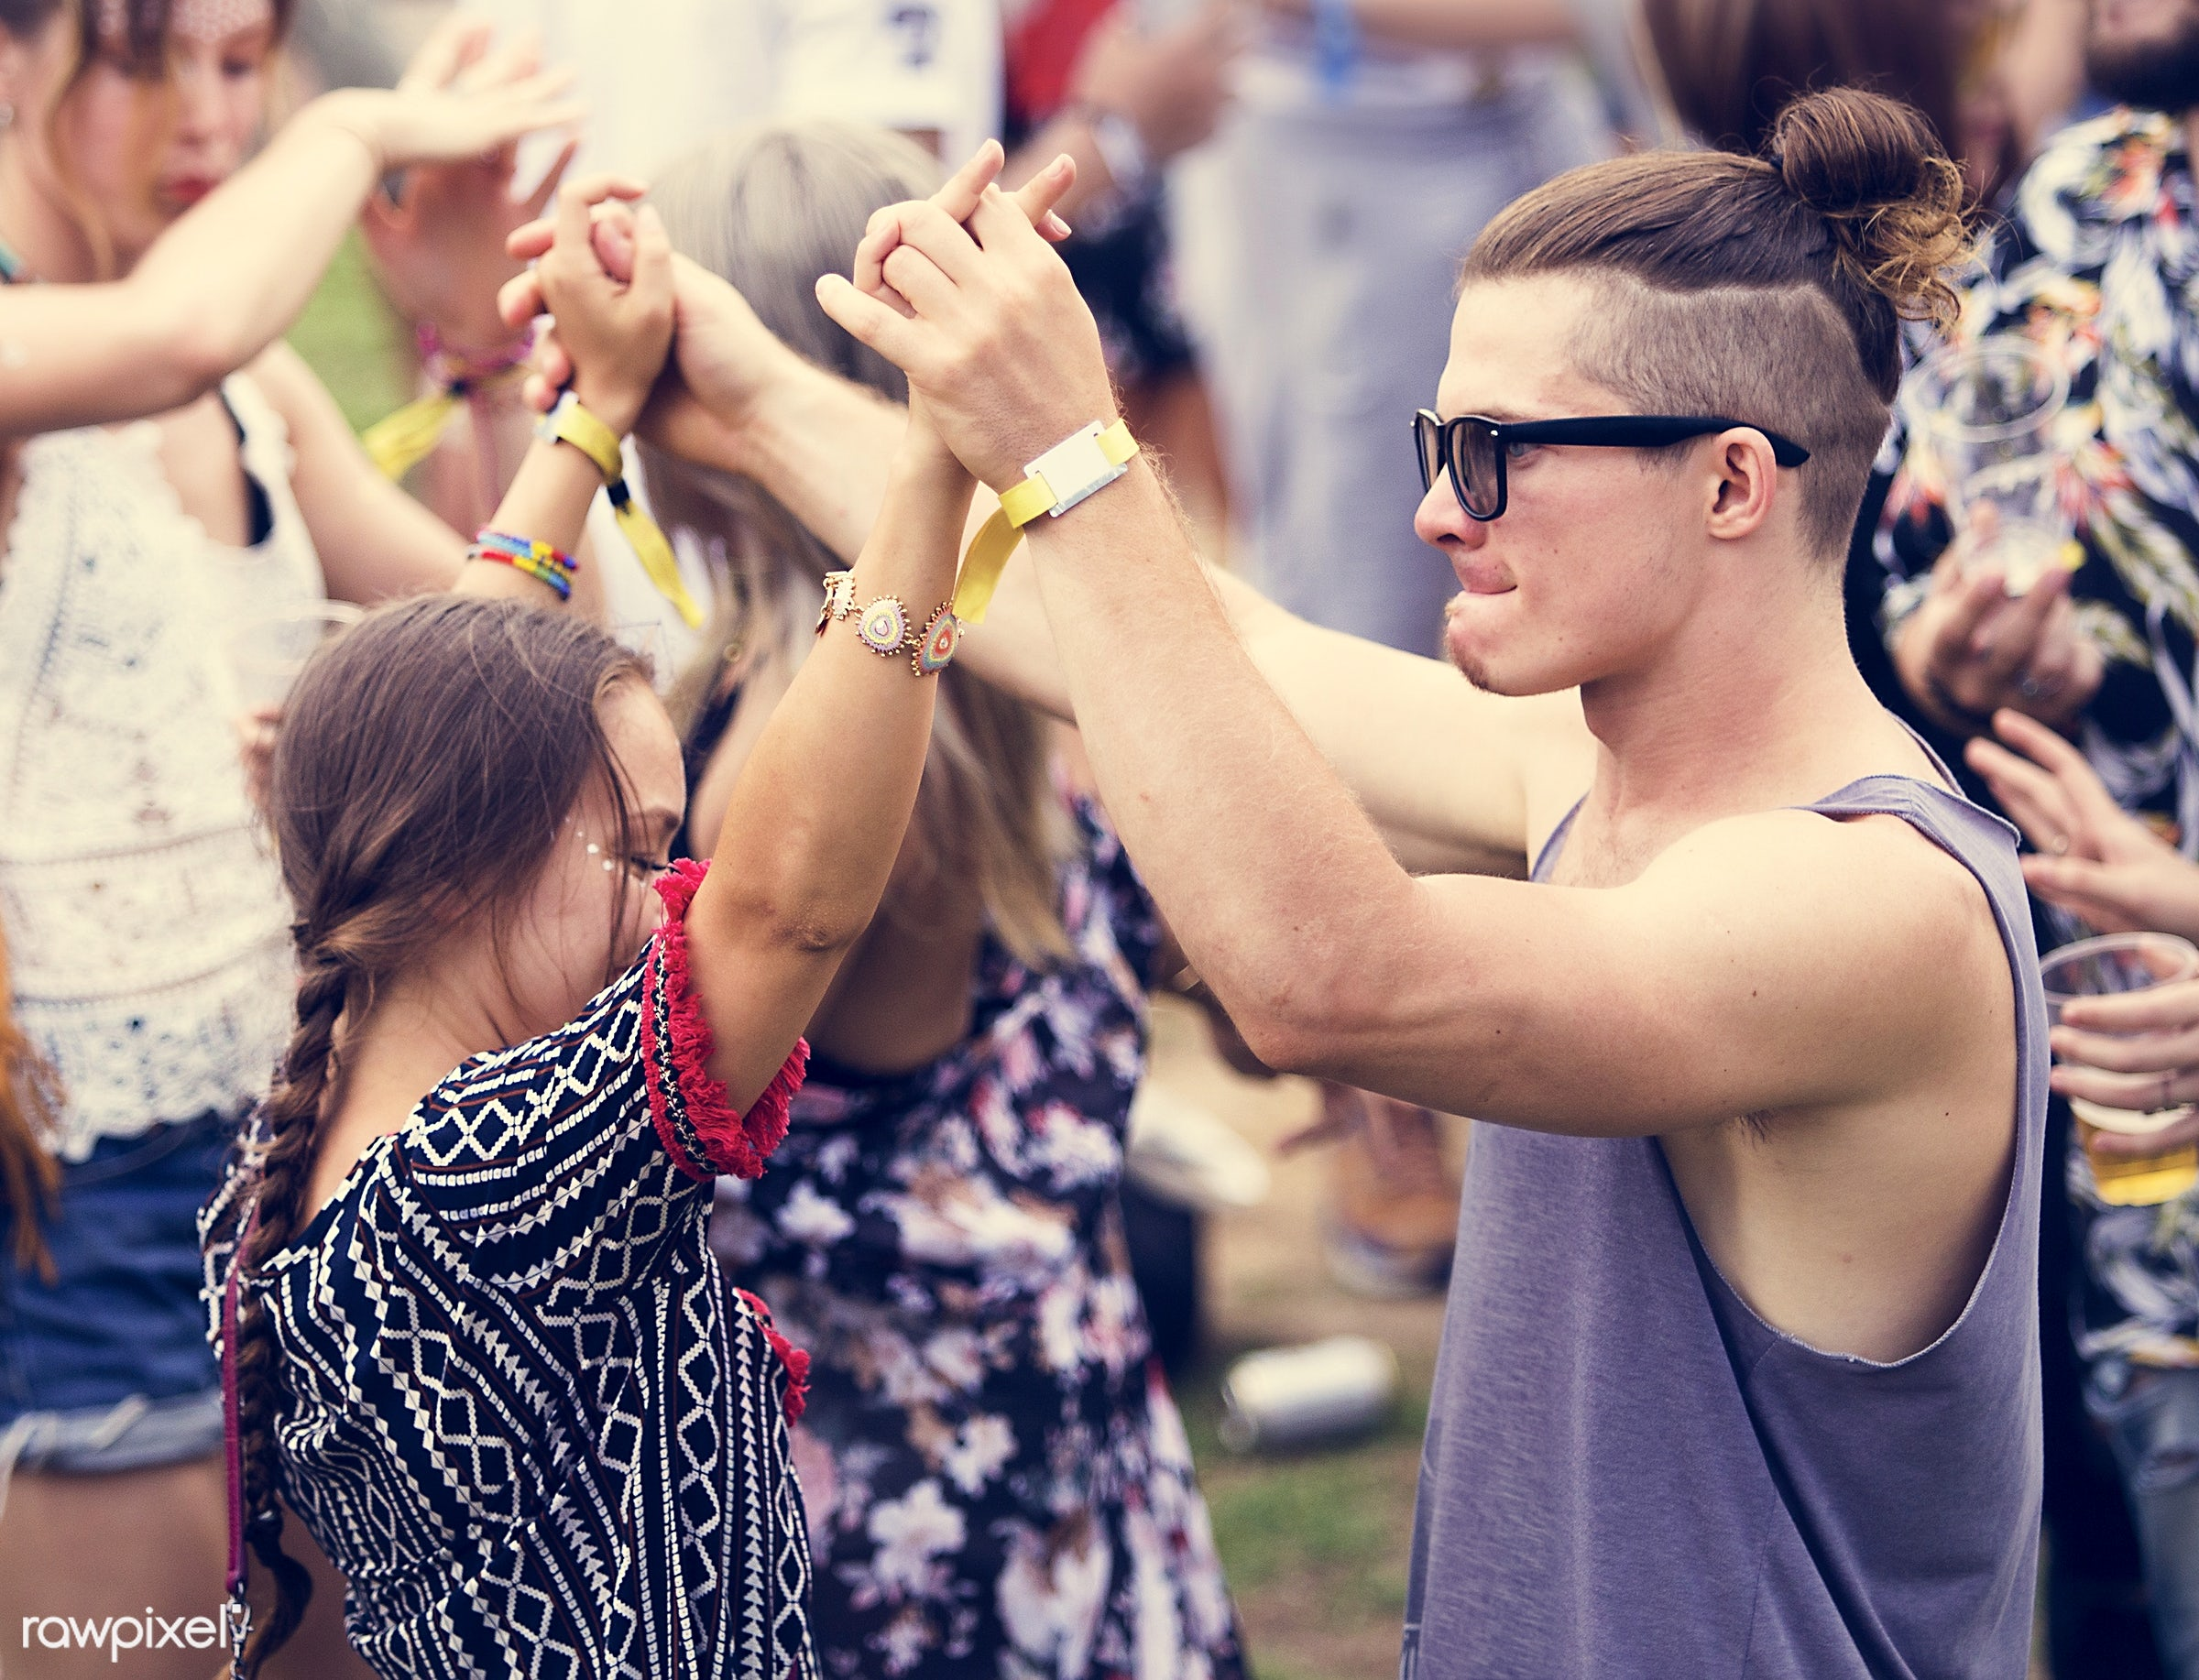 concert, bonding, party, people, friends, event, lifestyle, weekend, friendship, leisure, happiness, fun, youth, holiday,...